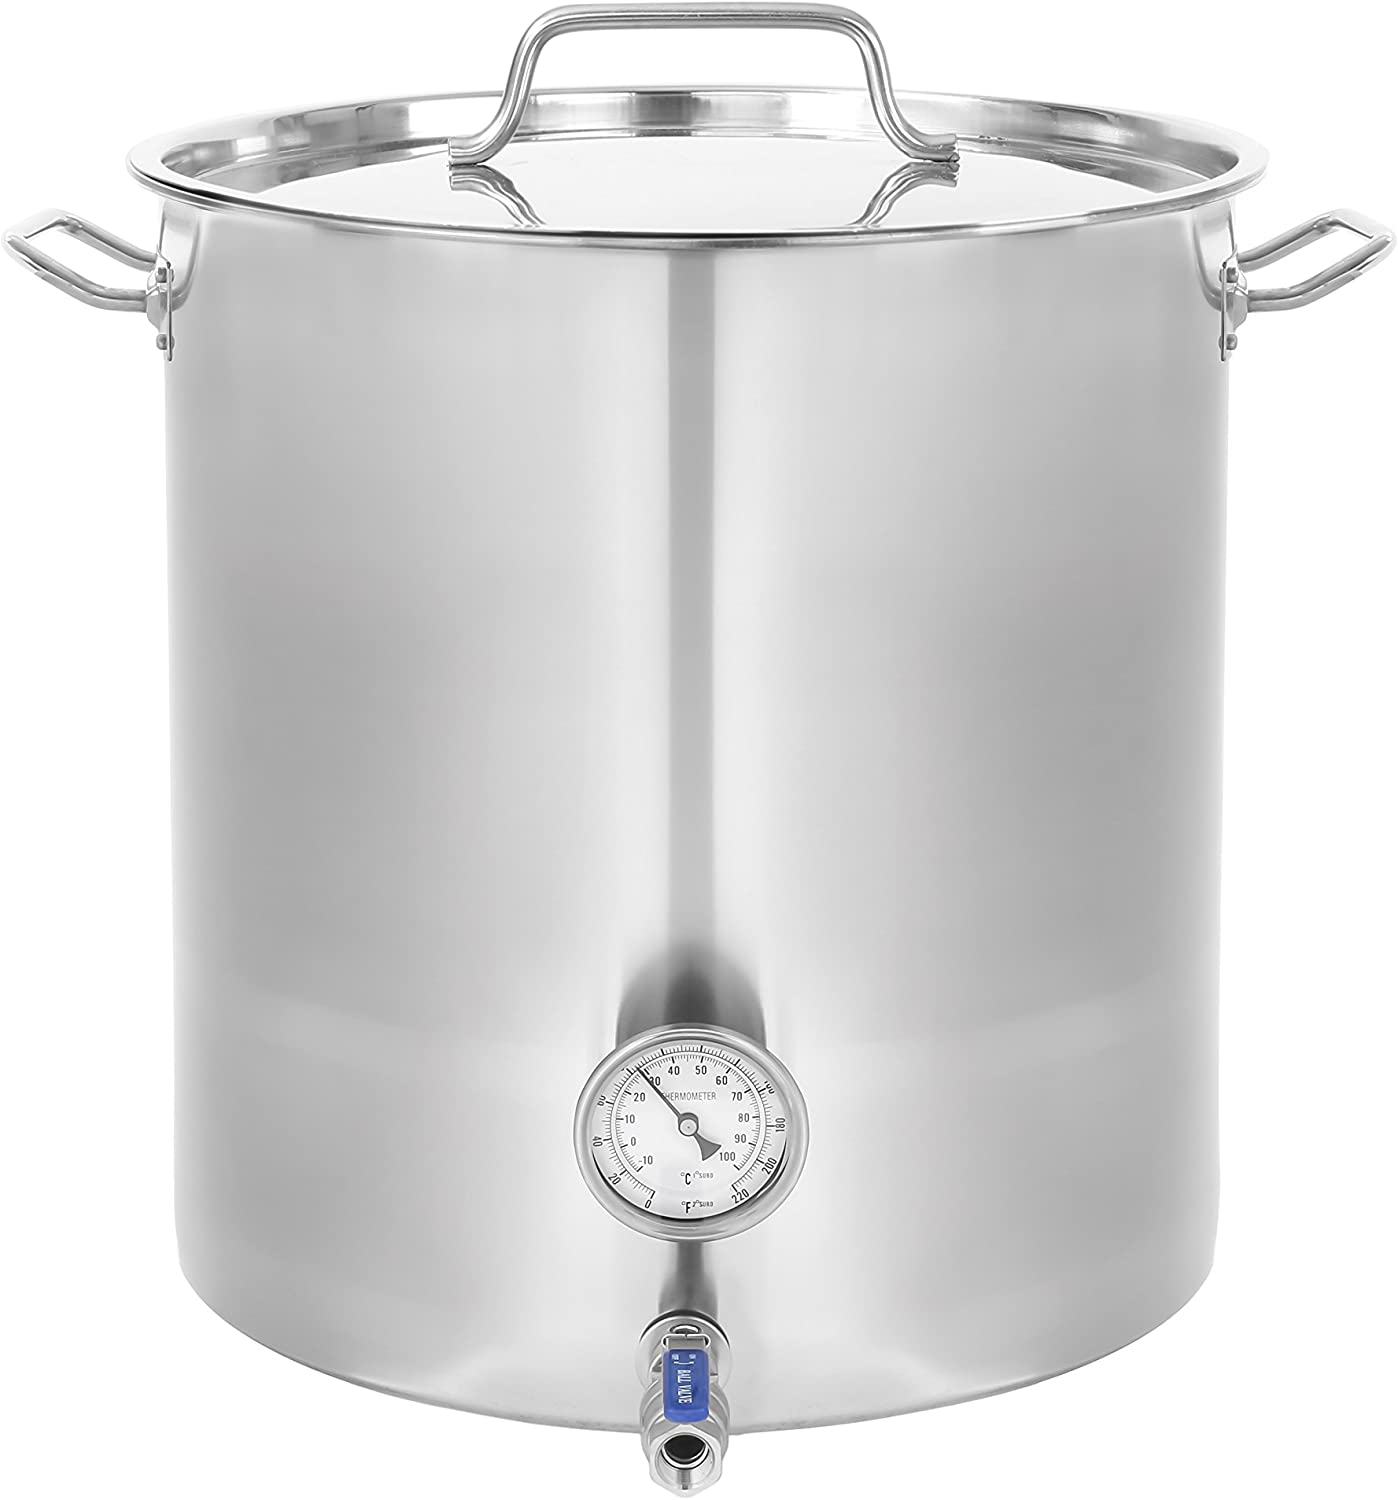 CONCORD Stainless Steel Home Brew Kettle Stock Pot (Weldless Fittings) TRIPLY BOTTOM VERSION (100 QT/ 25 Gal)